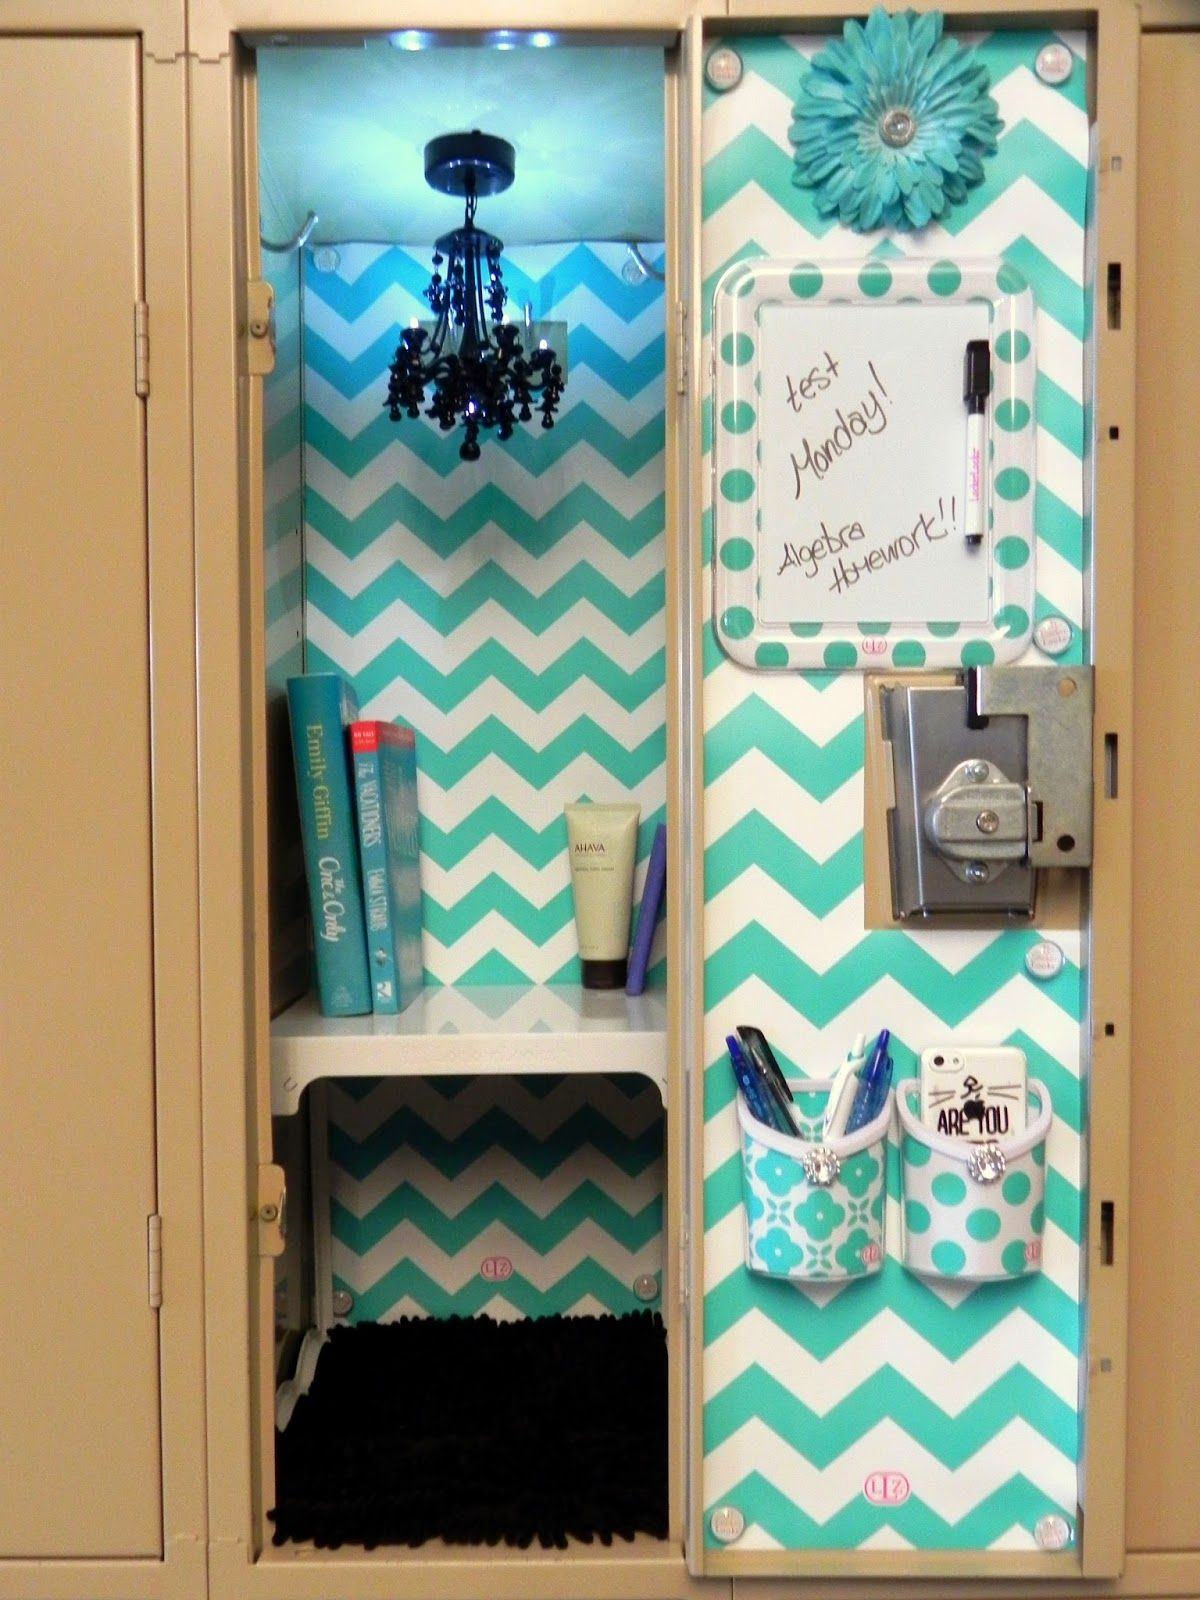 Diy Locker Decorations Design Ideas And Decor Middle School Lockers School Locker Decorations School Lockers